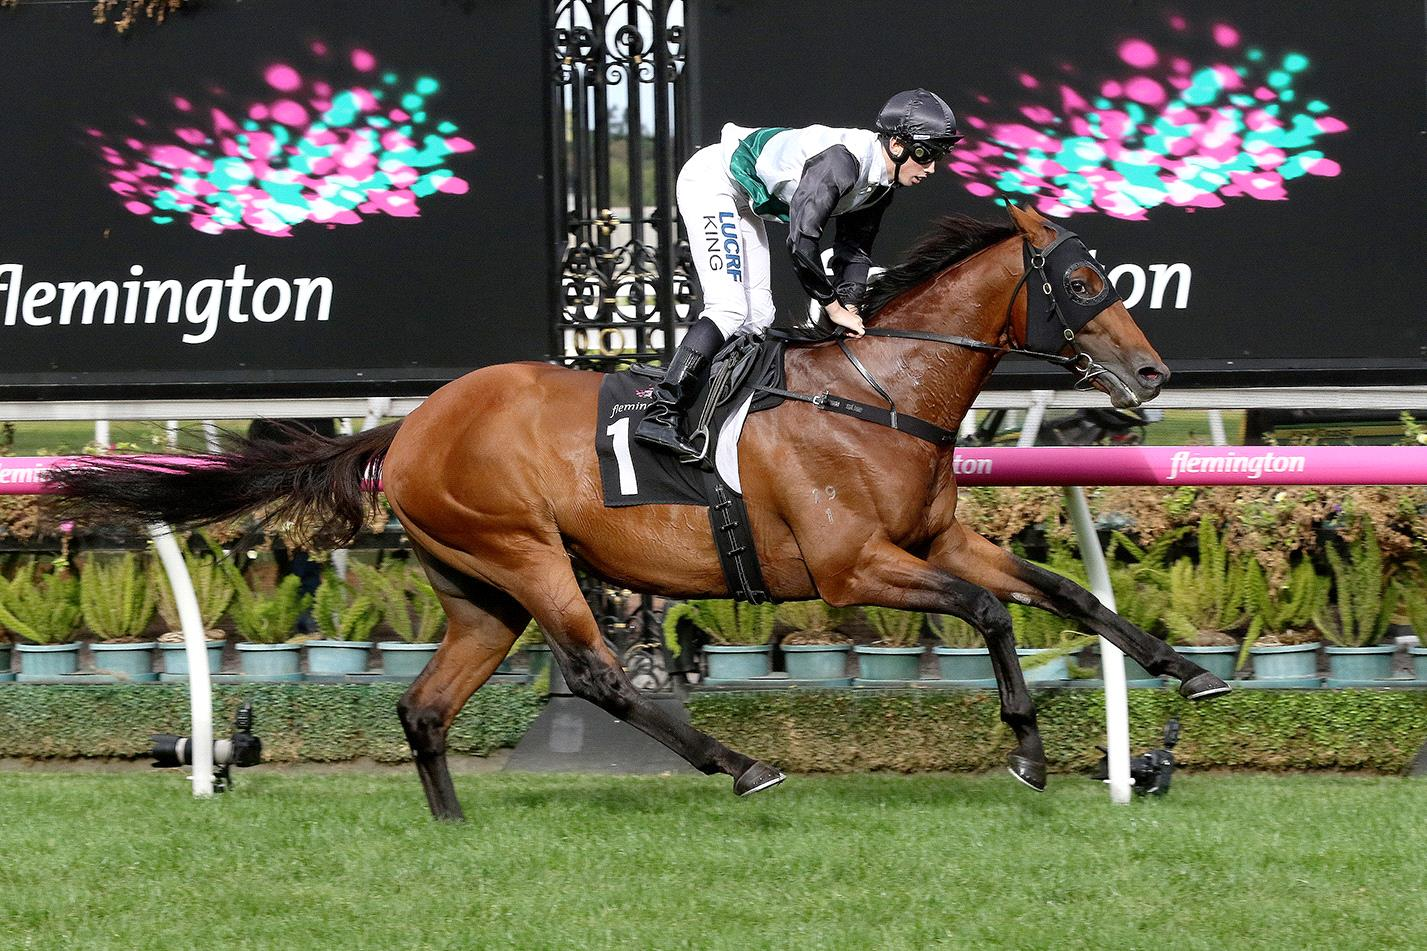 Too bad to be true first-up it wouldn't shock to see a huge turn around from the Caulfield Cup winner.